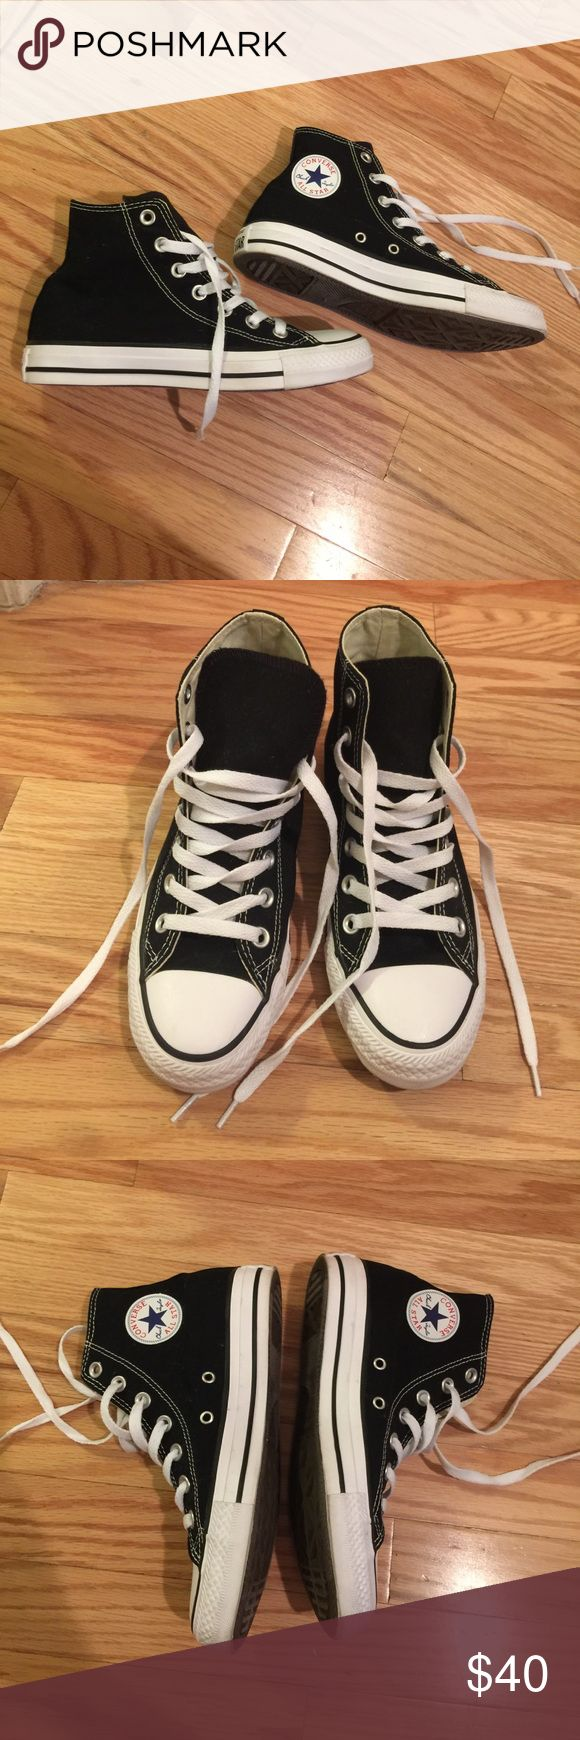 Black and white high top Converse Classic Black and white high top Converse Classics women's size 6 worn once inside good as new Converse Shoes Sneakers